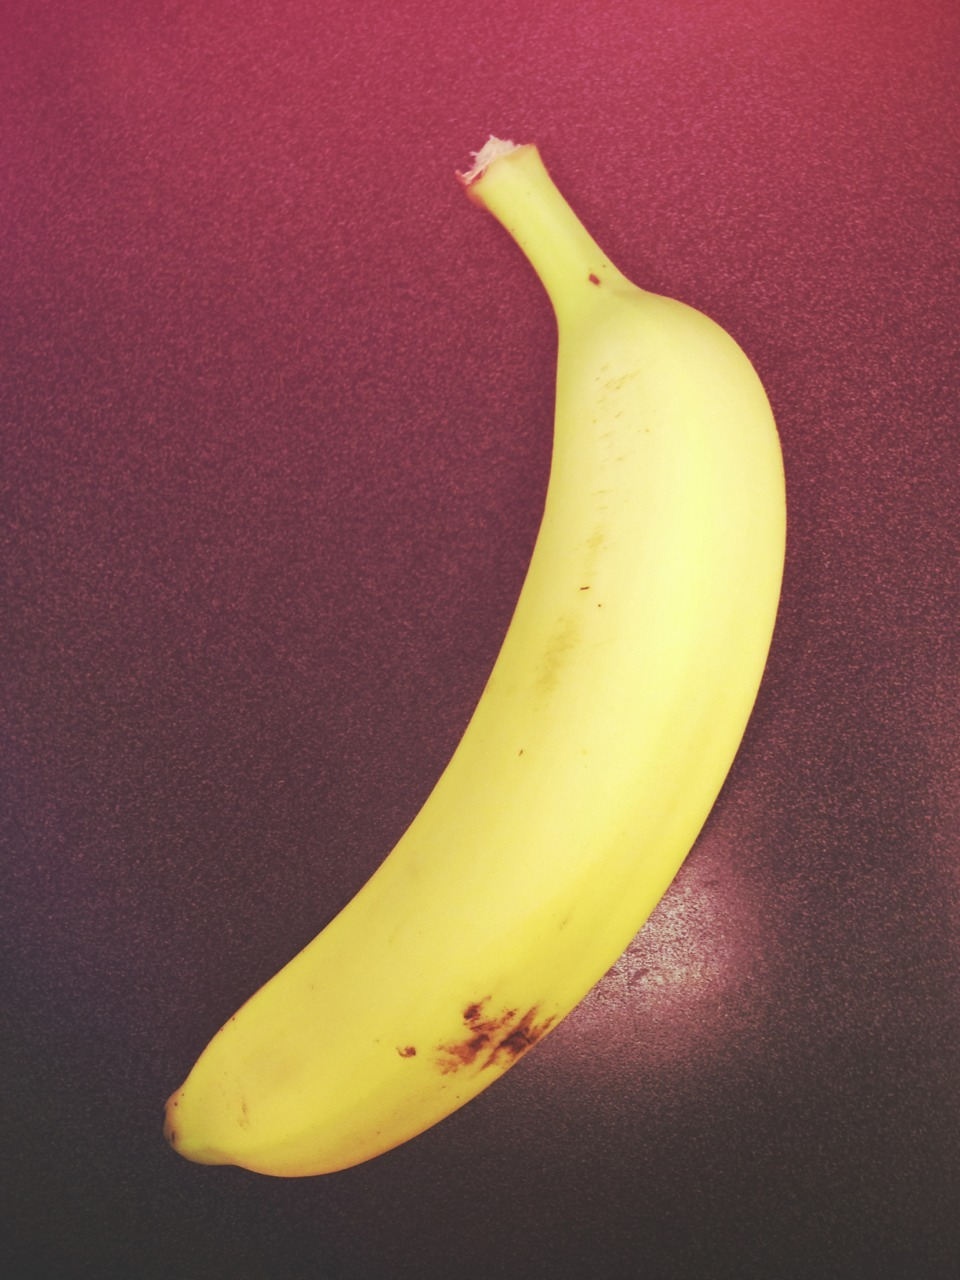 The best picture of a banana you'll ever see!